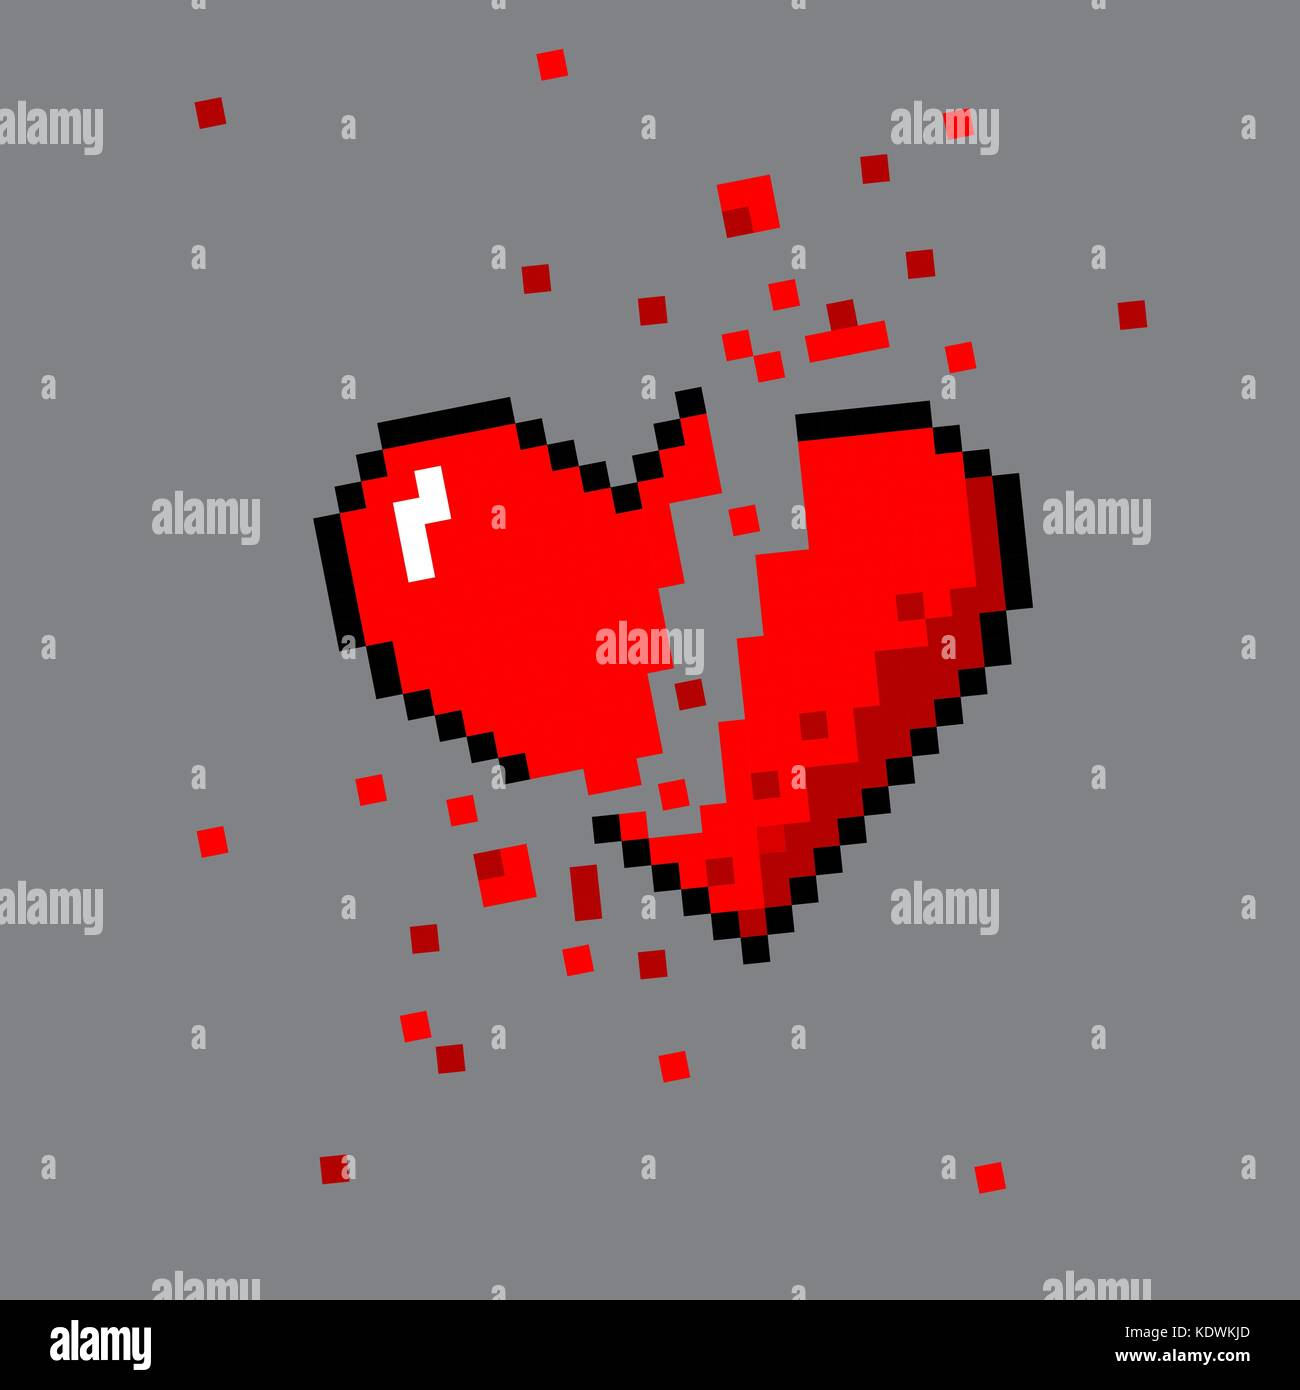 Pixelated Art Stock Photos Pixelated Art Stock Images Alamy